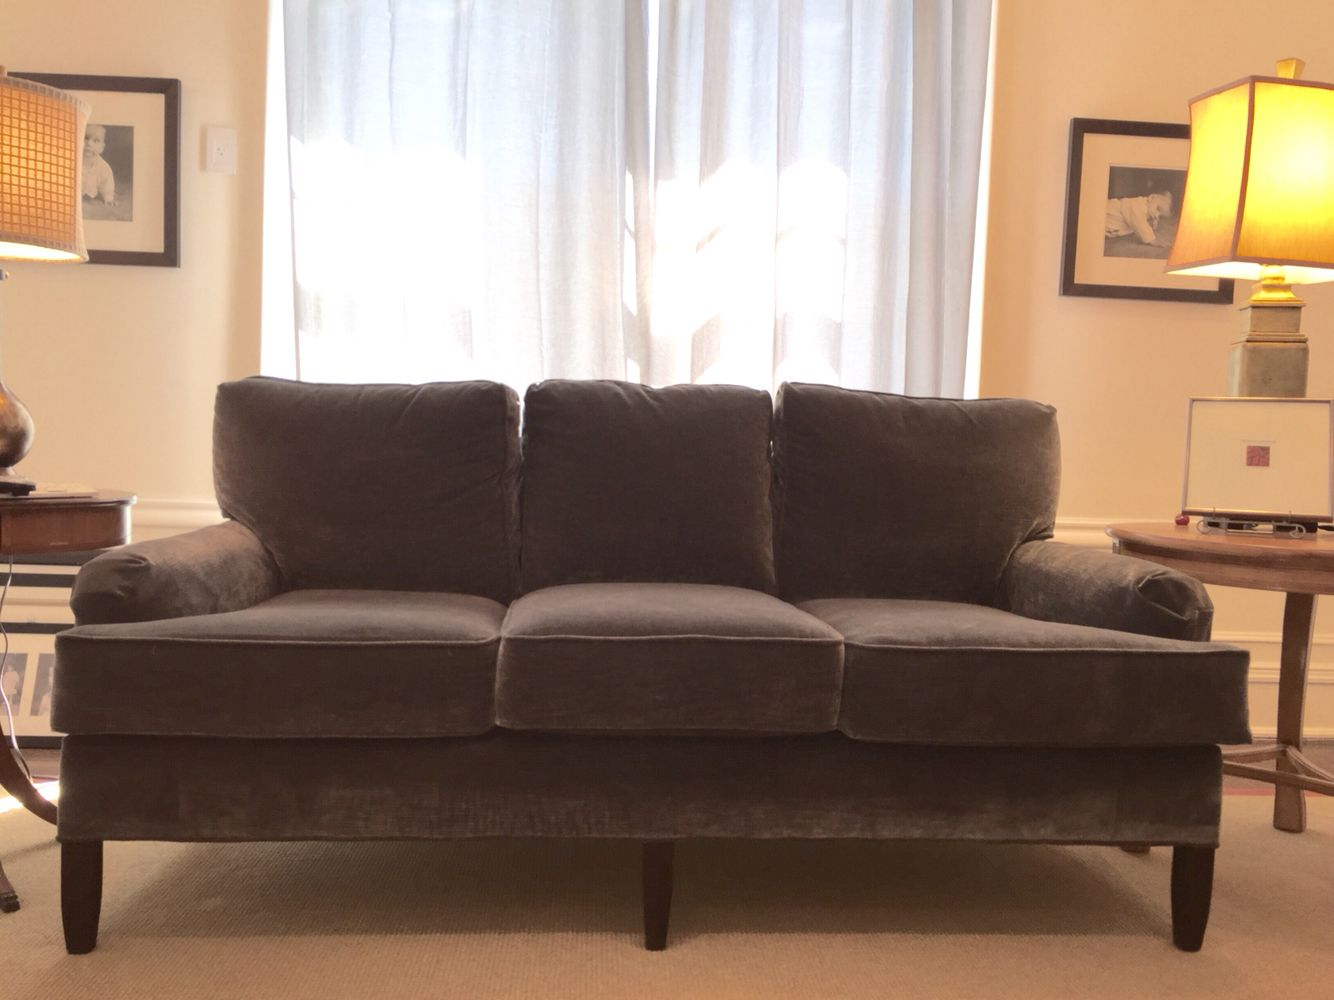 My Contribution To The Graphite Velvet Sofa Collection  Sofa In In Mansfield Graphite Velvet Sofa Chairs (Image 12 of 20)